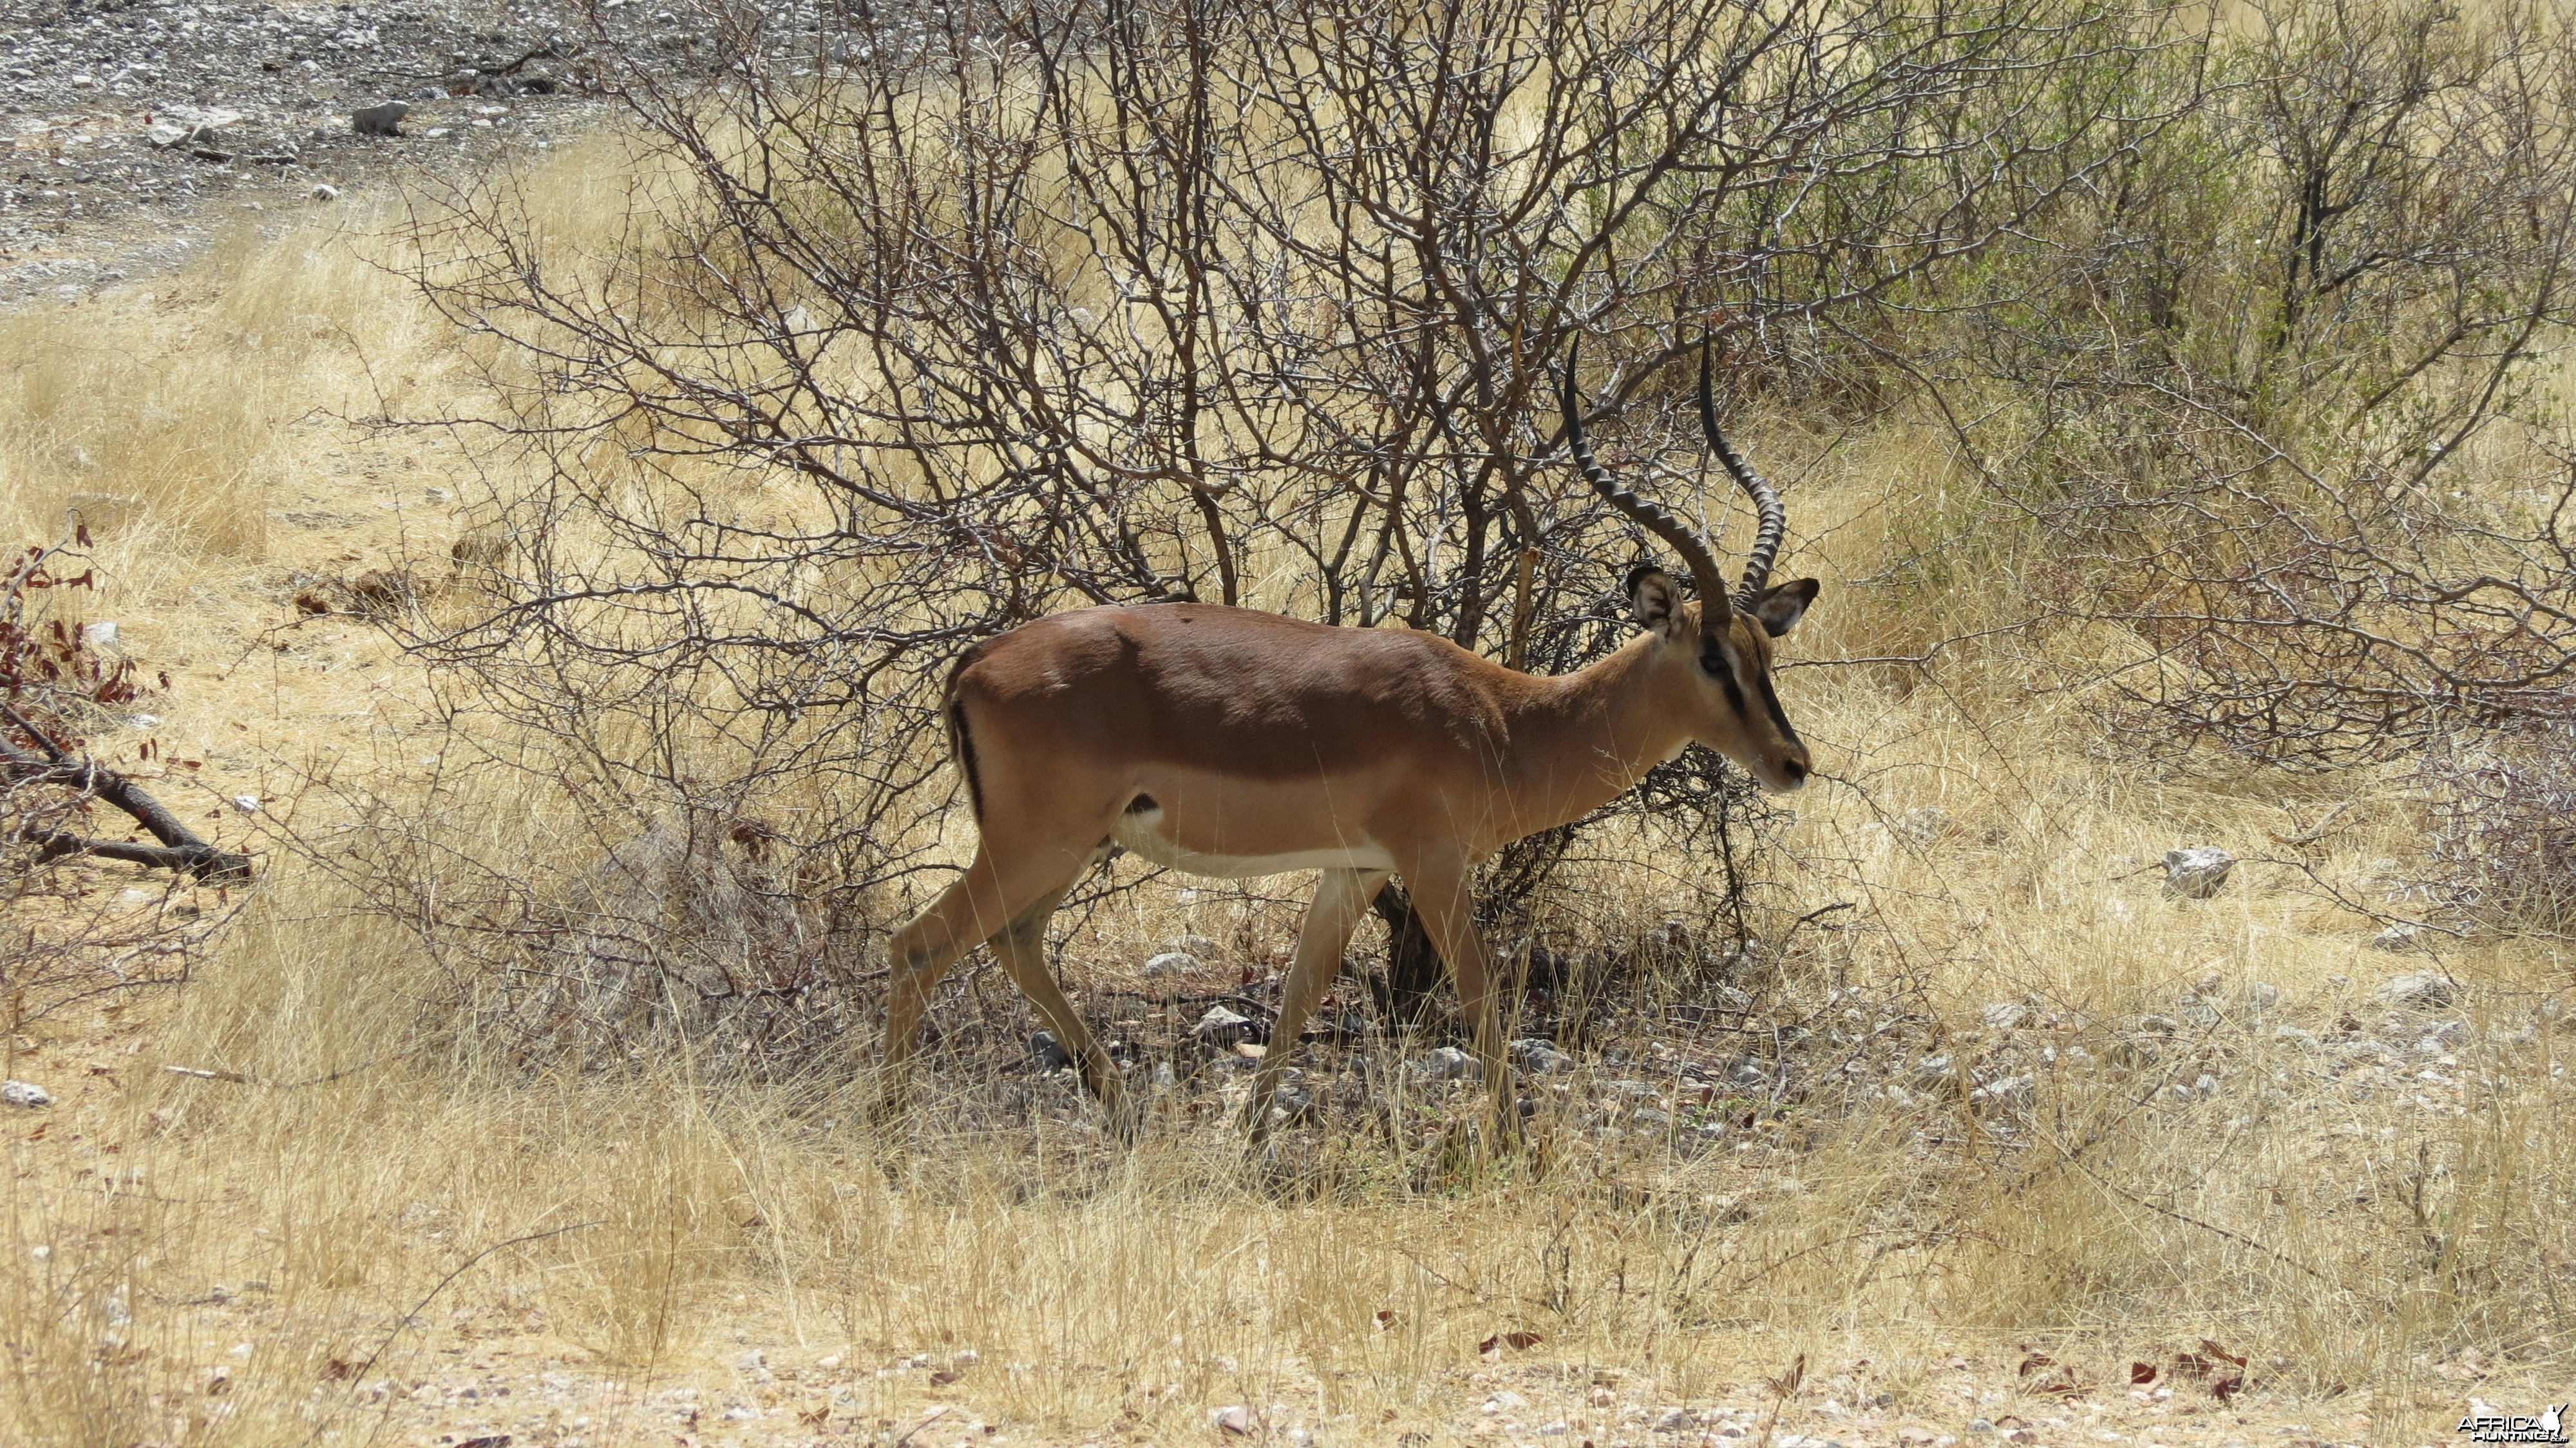 Black-Faced Impala at Etosha National Park